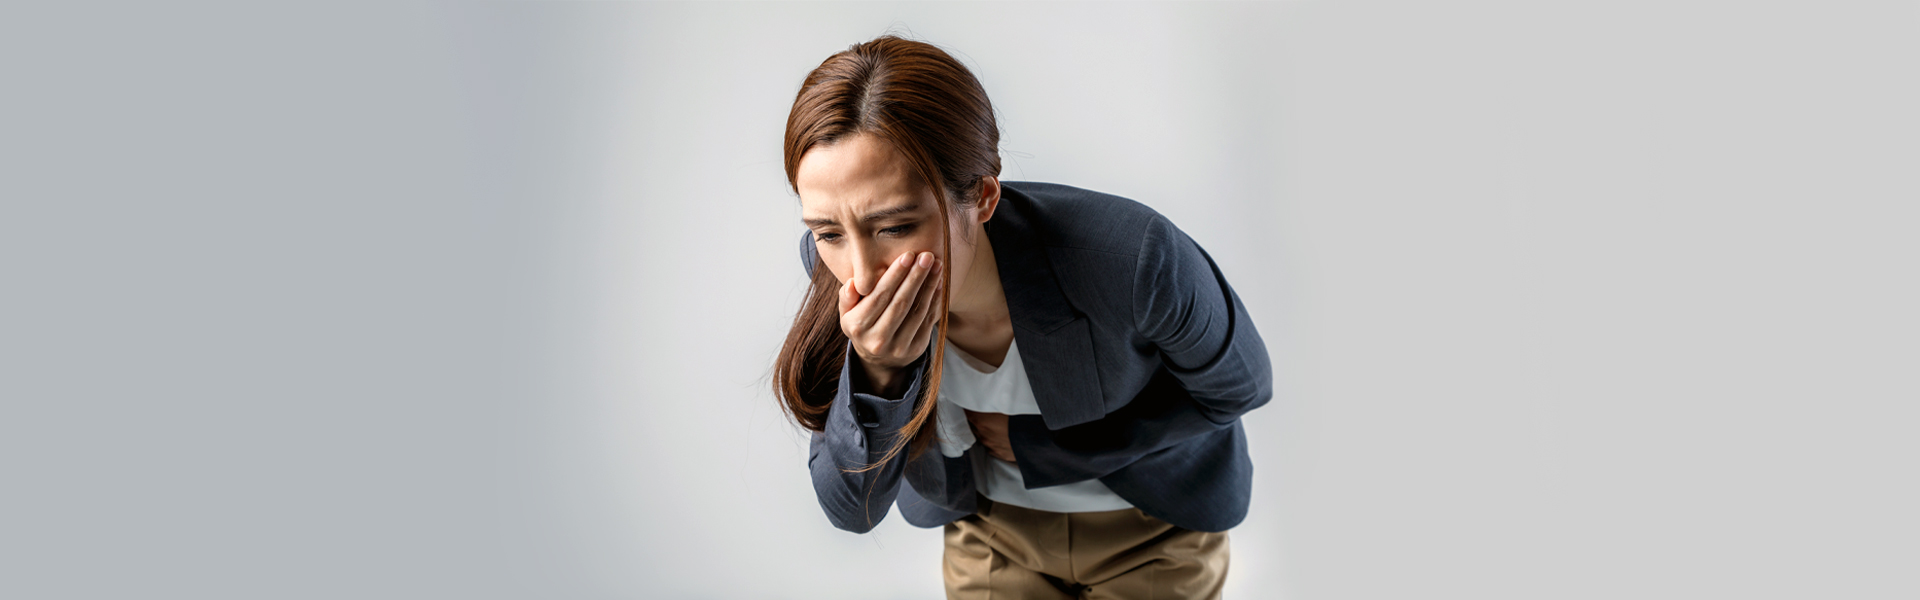 What Is Nausea? A Detailed Look Into the Causes, Diagnosis, and Treatment